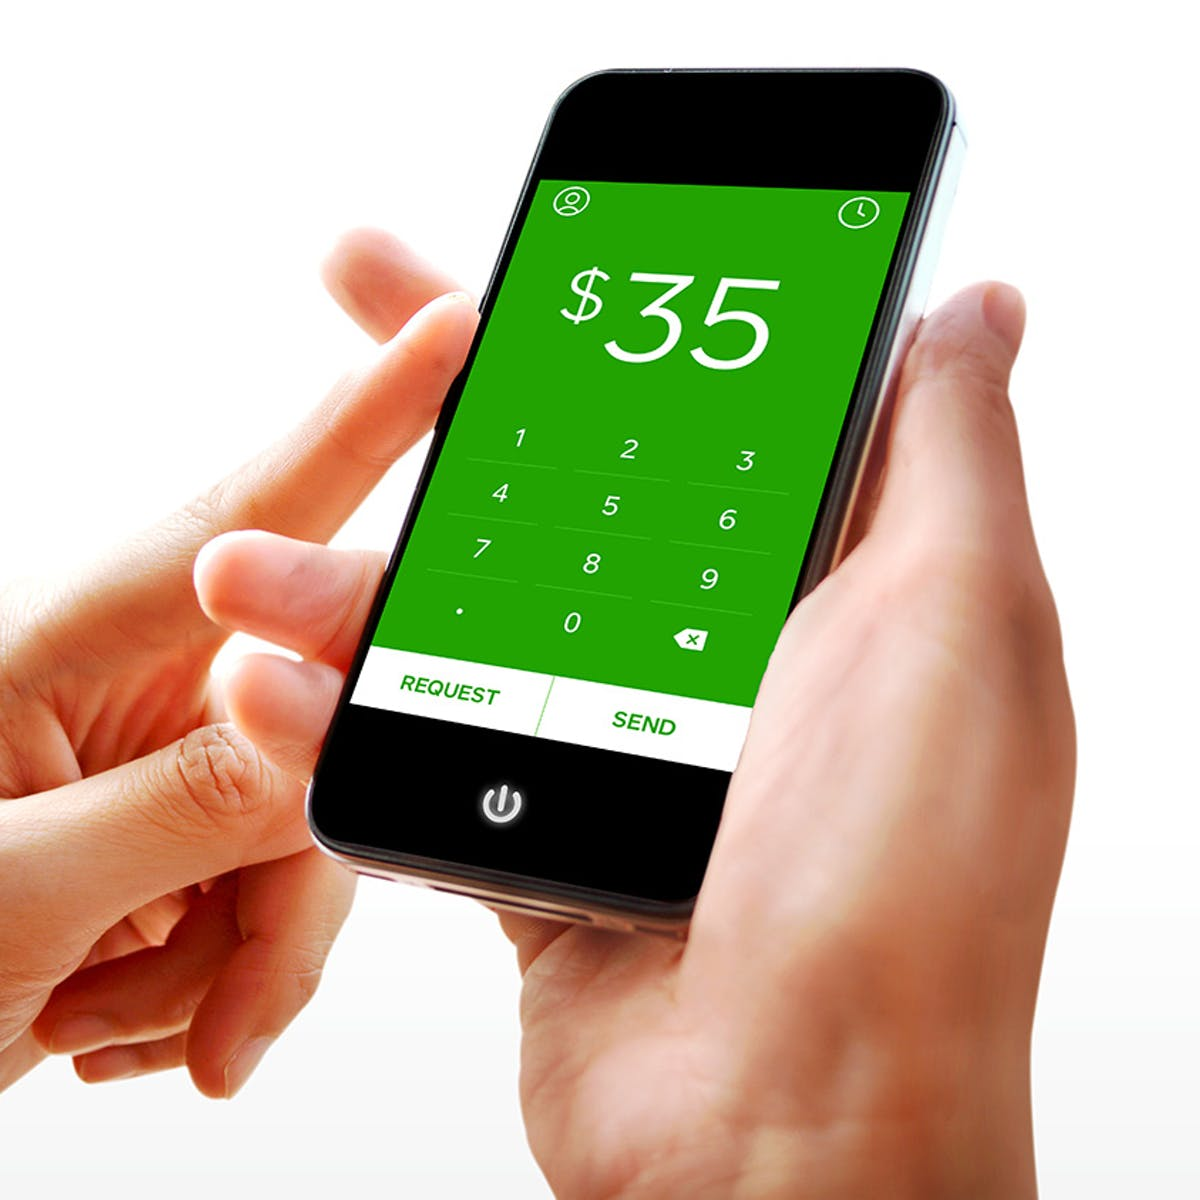 Cash App Payments Is Frequently Down, So Here's What to Do